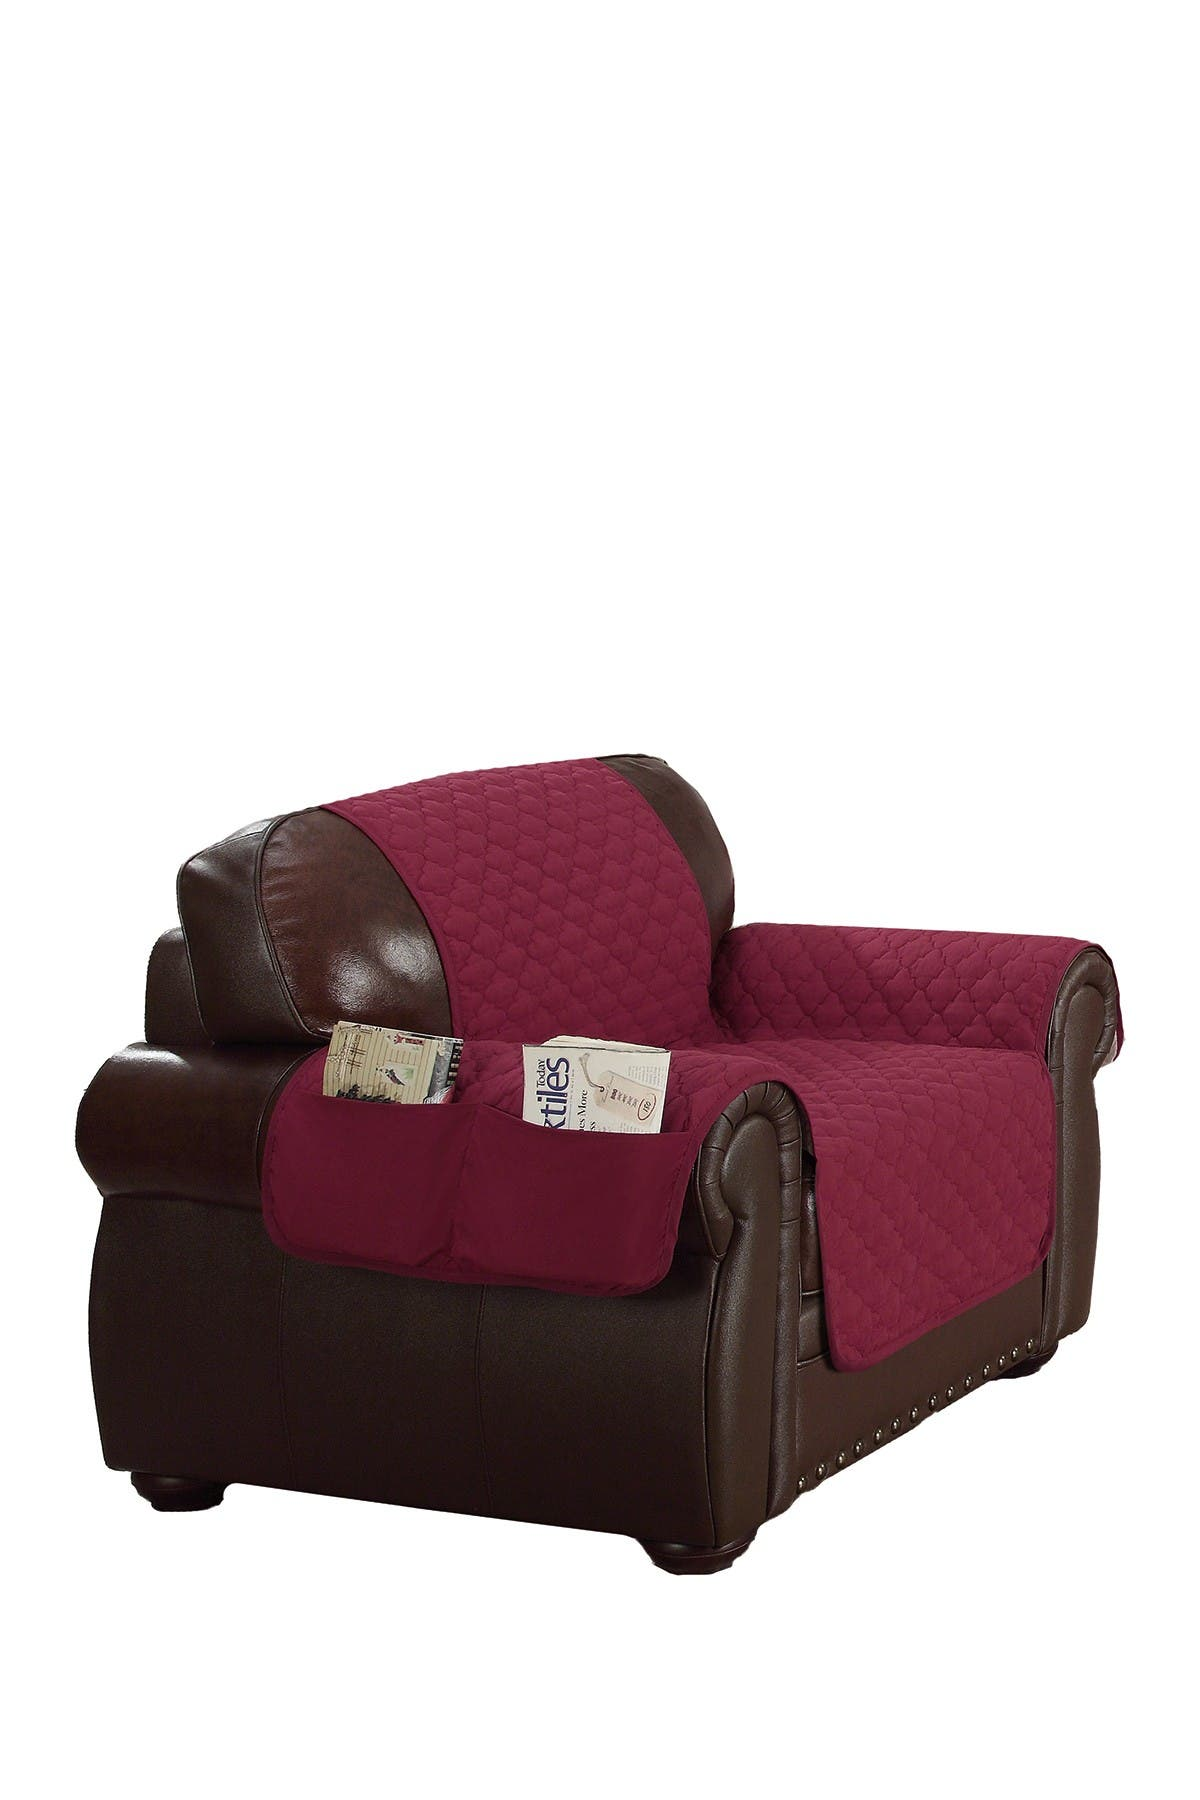 Image of Duck River Textile Garnet/Natural Reynold Reversible Water Resistant Microfiber Chair Cover